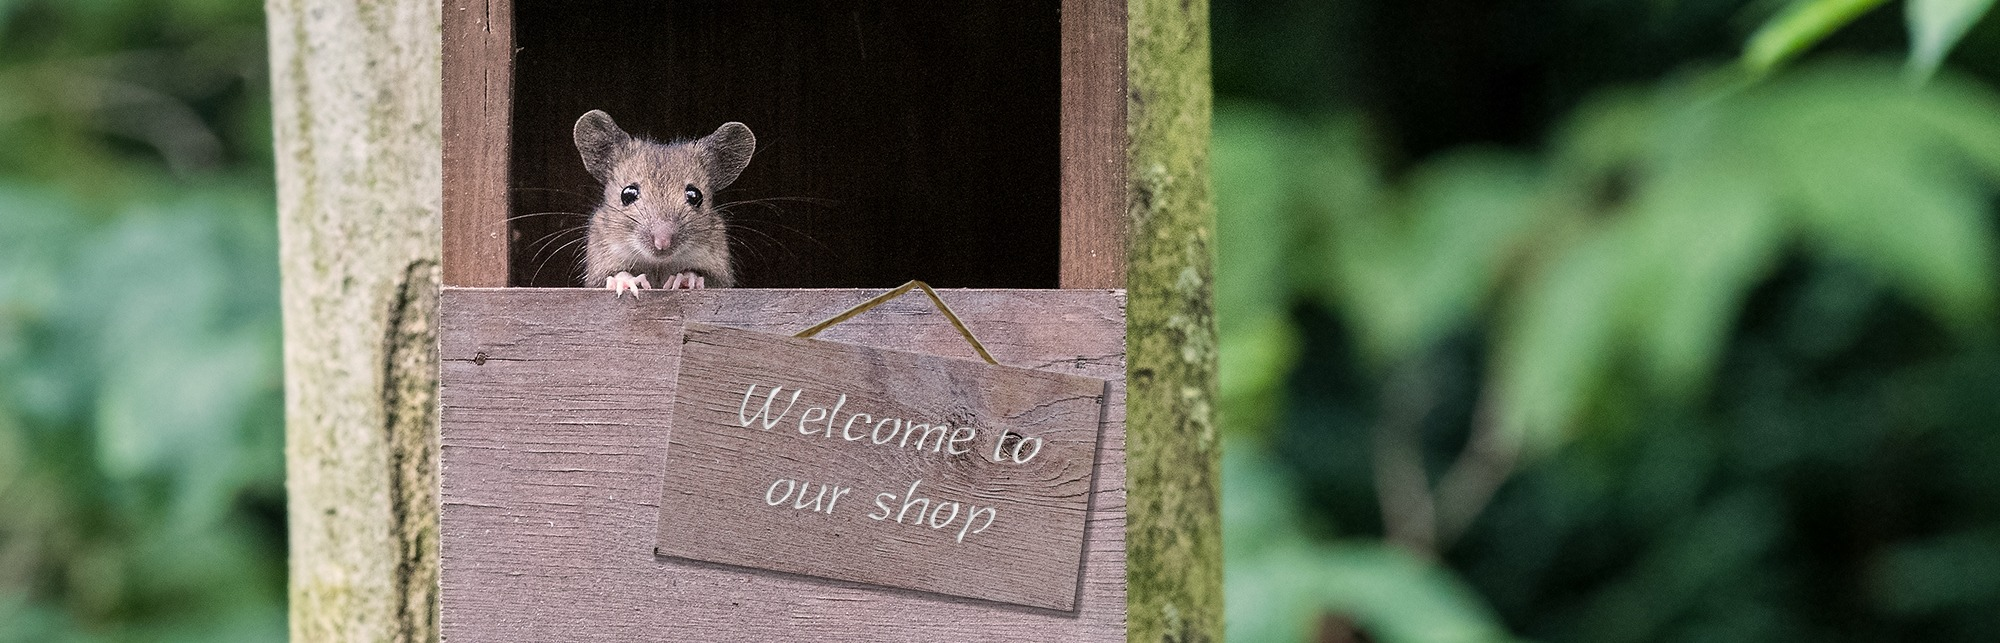 A wood mouse peeking out of a nest box with a sign that reads Welcome to our shop